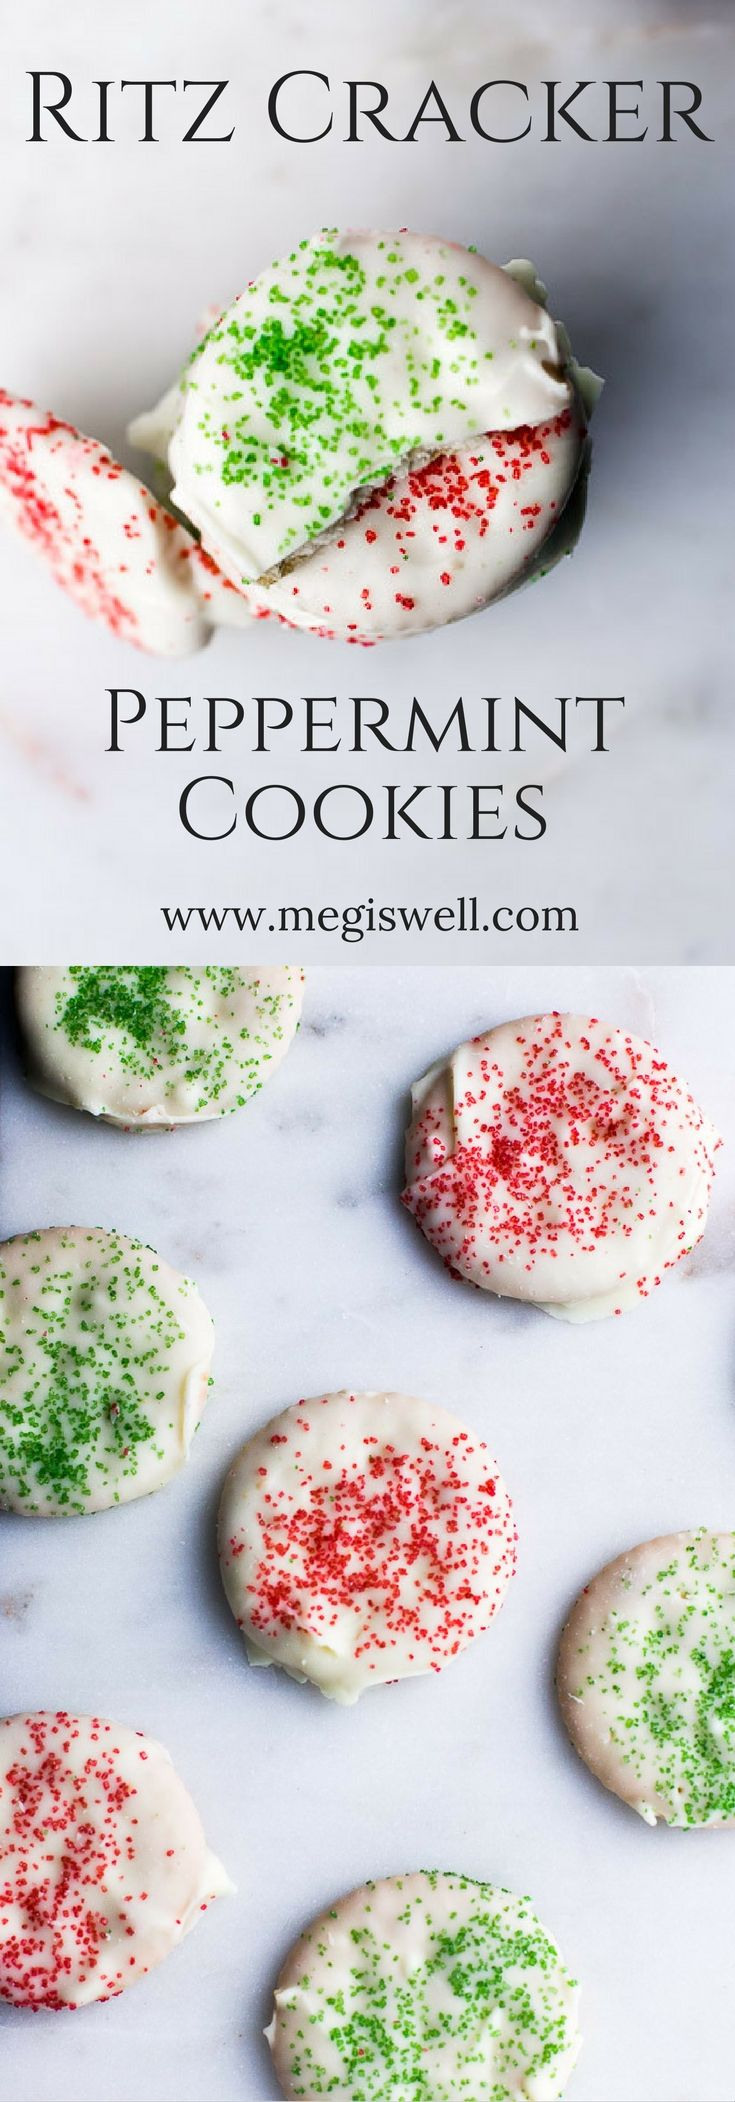 Cool fresh mint, hardened and creamy white chocolate, and a crisp and salty Ritz Cracker all combine in one bite in these Ritz Cracker Peppermint Cookies, an easy no bake holiday freezer dessert. | www.megiswell.com